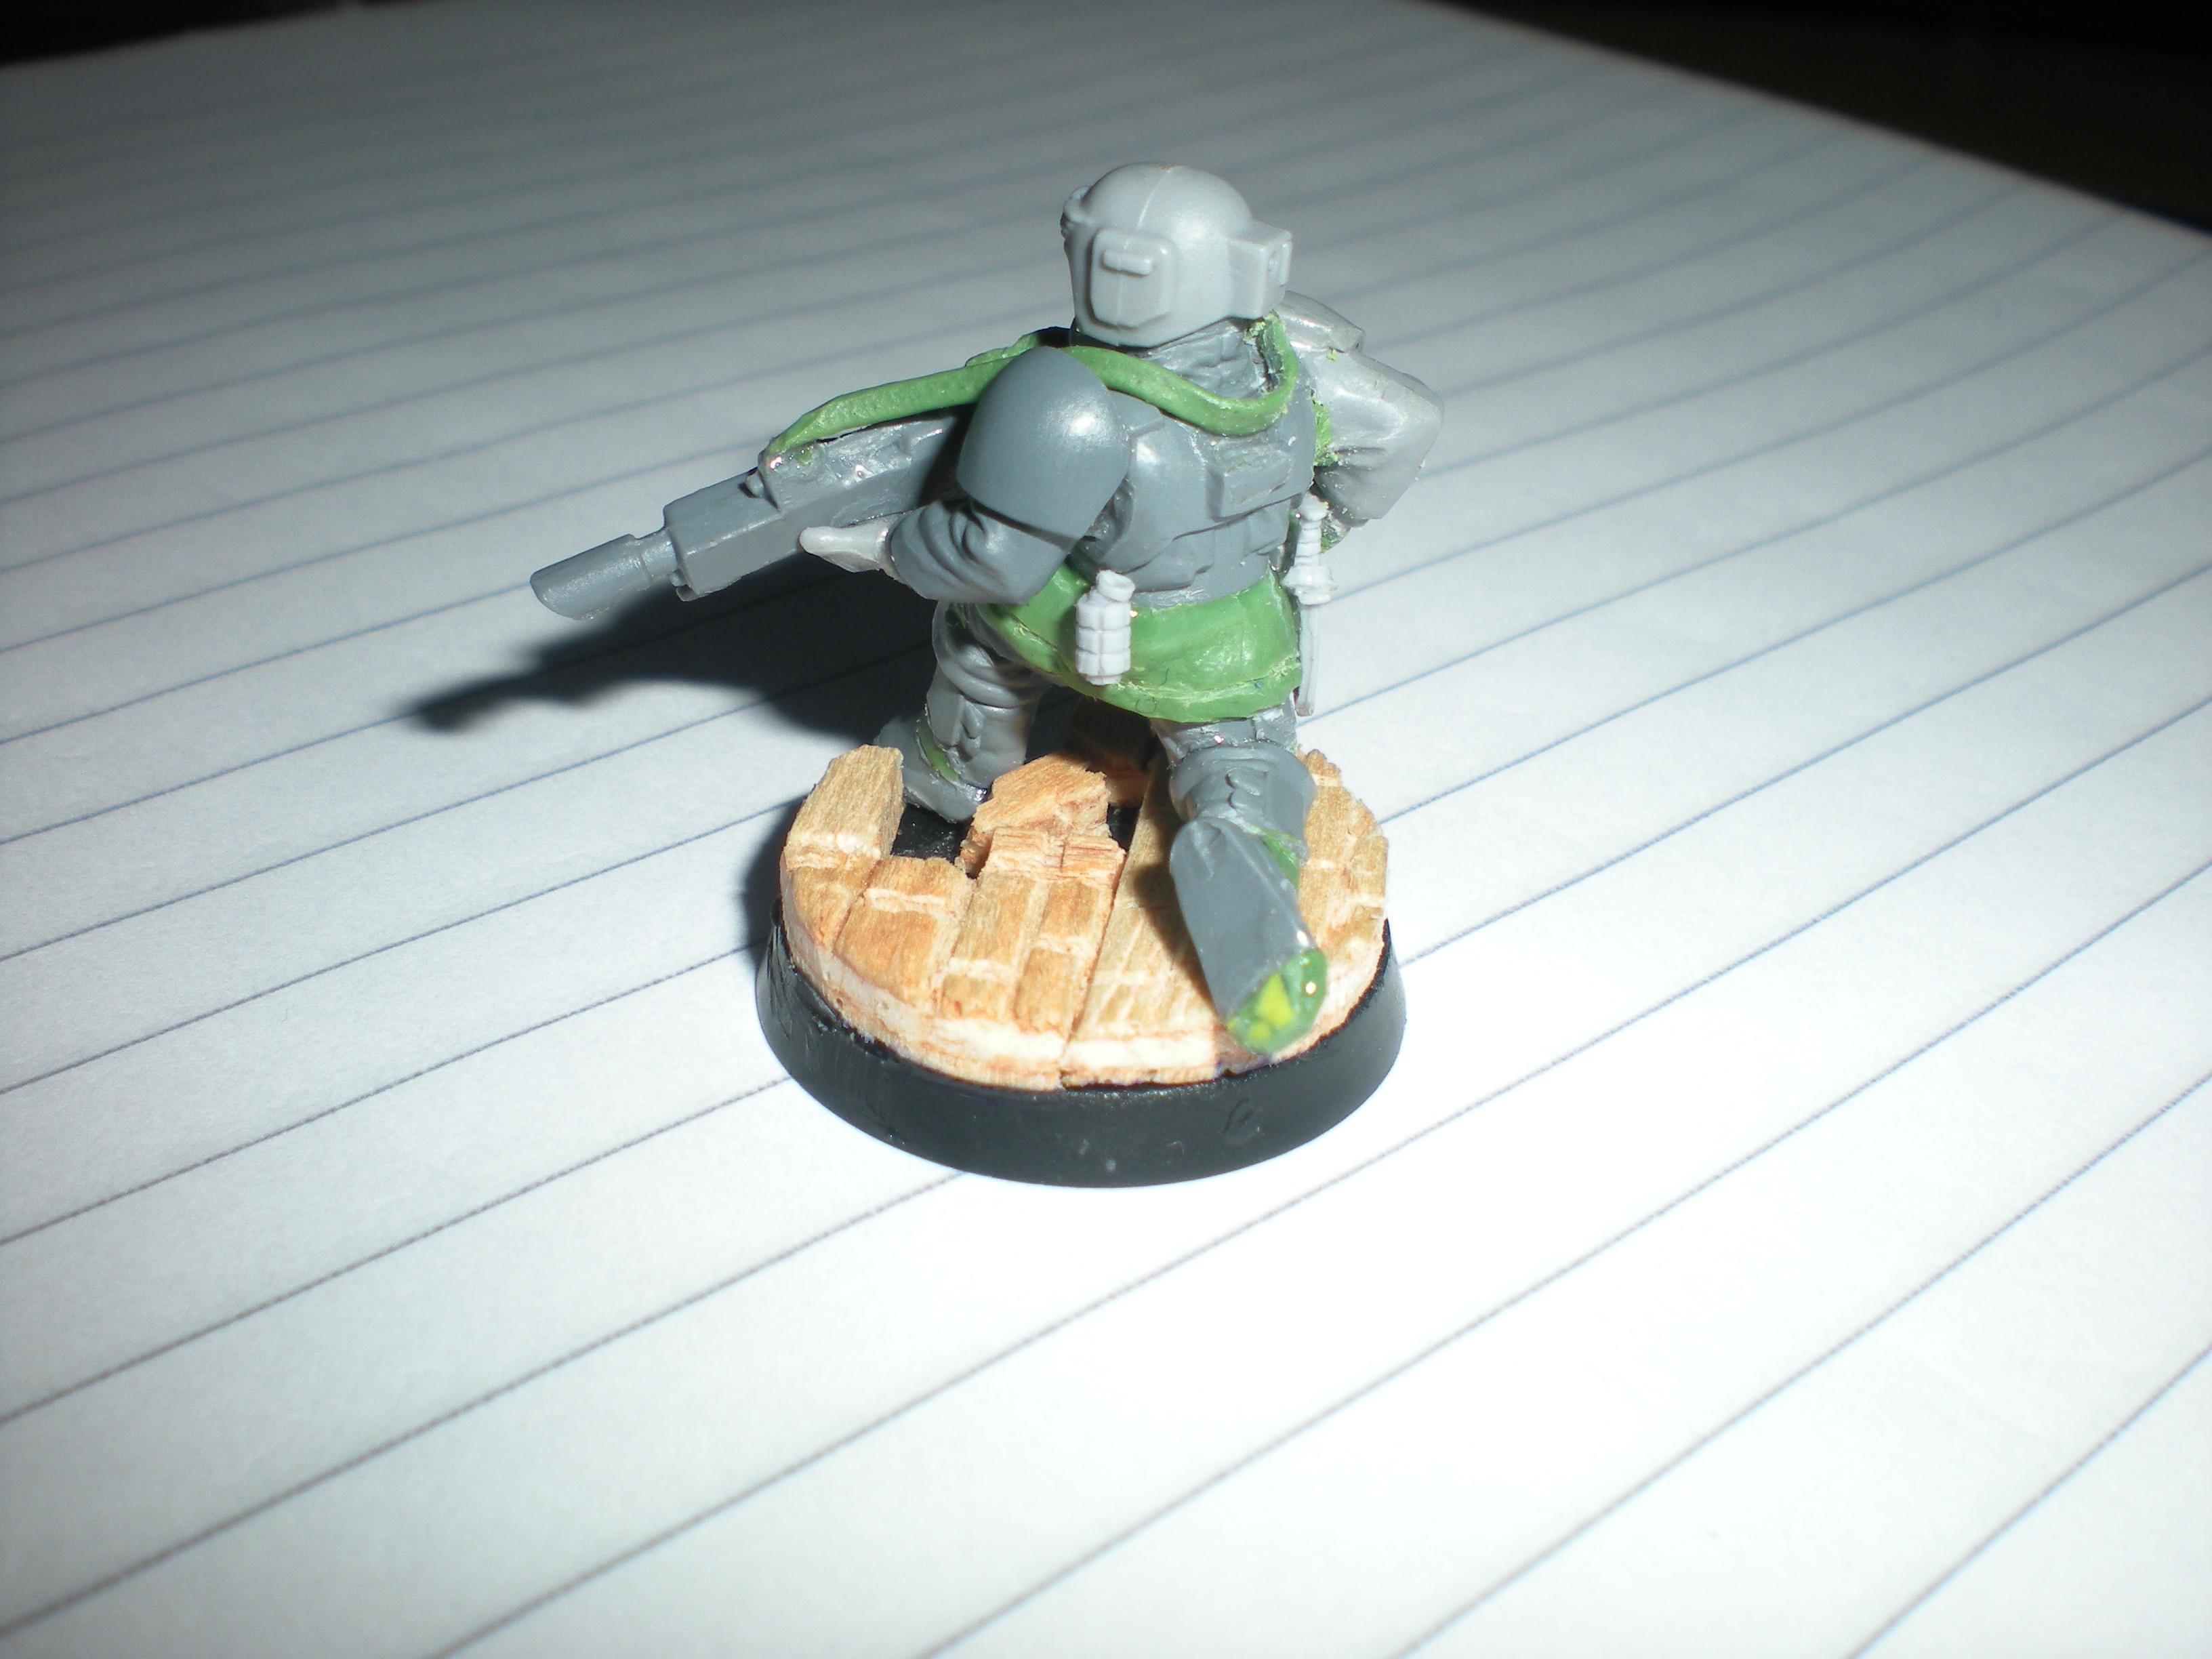 Imperial Guard, Warhammer 40,000